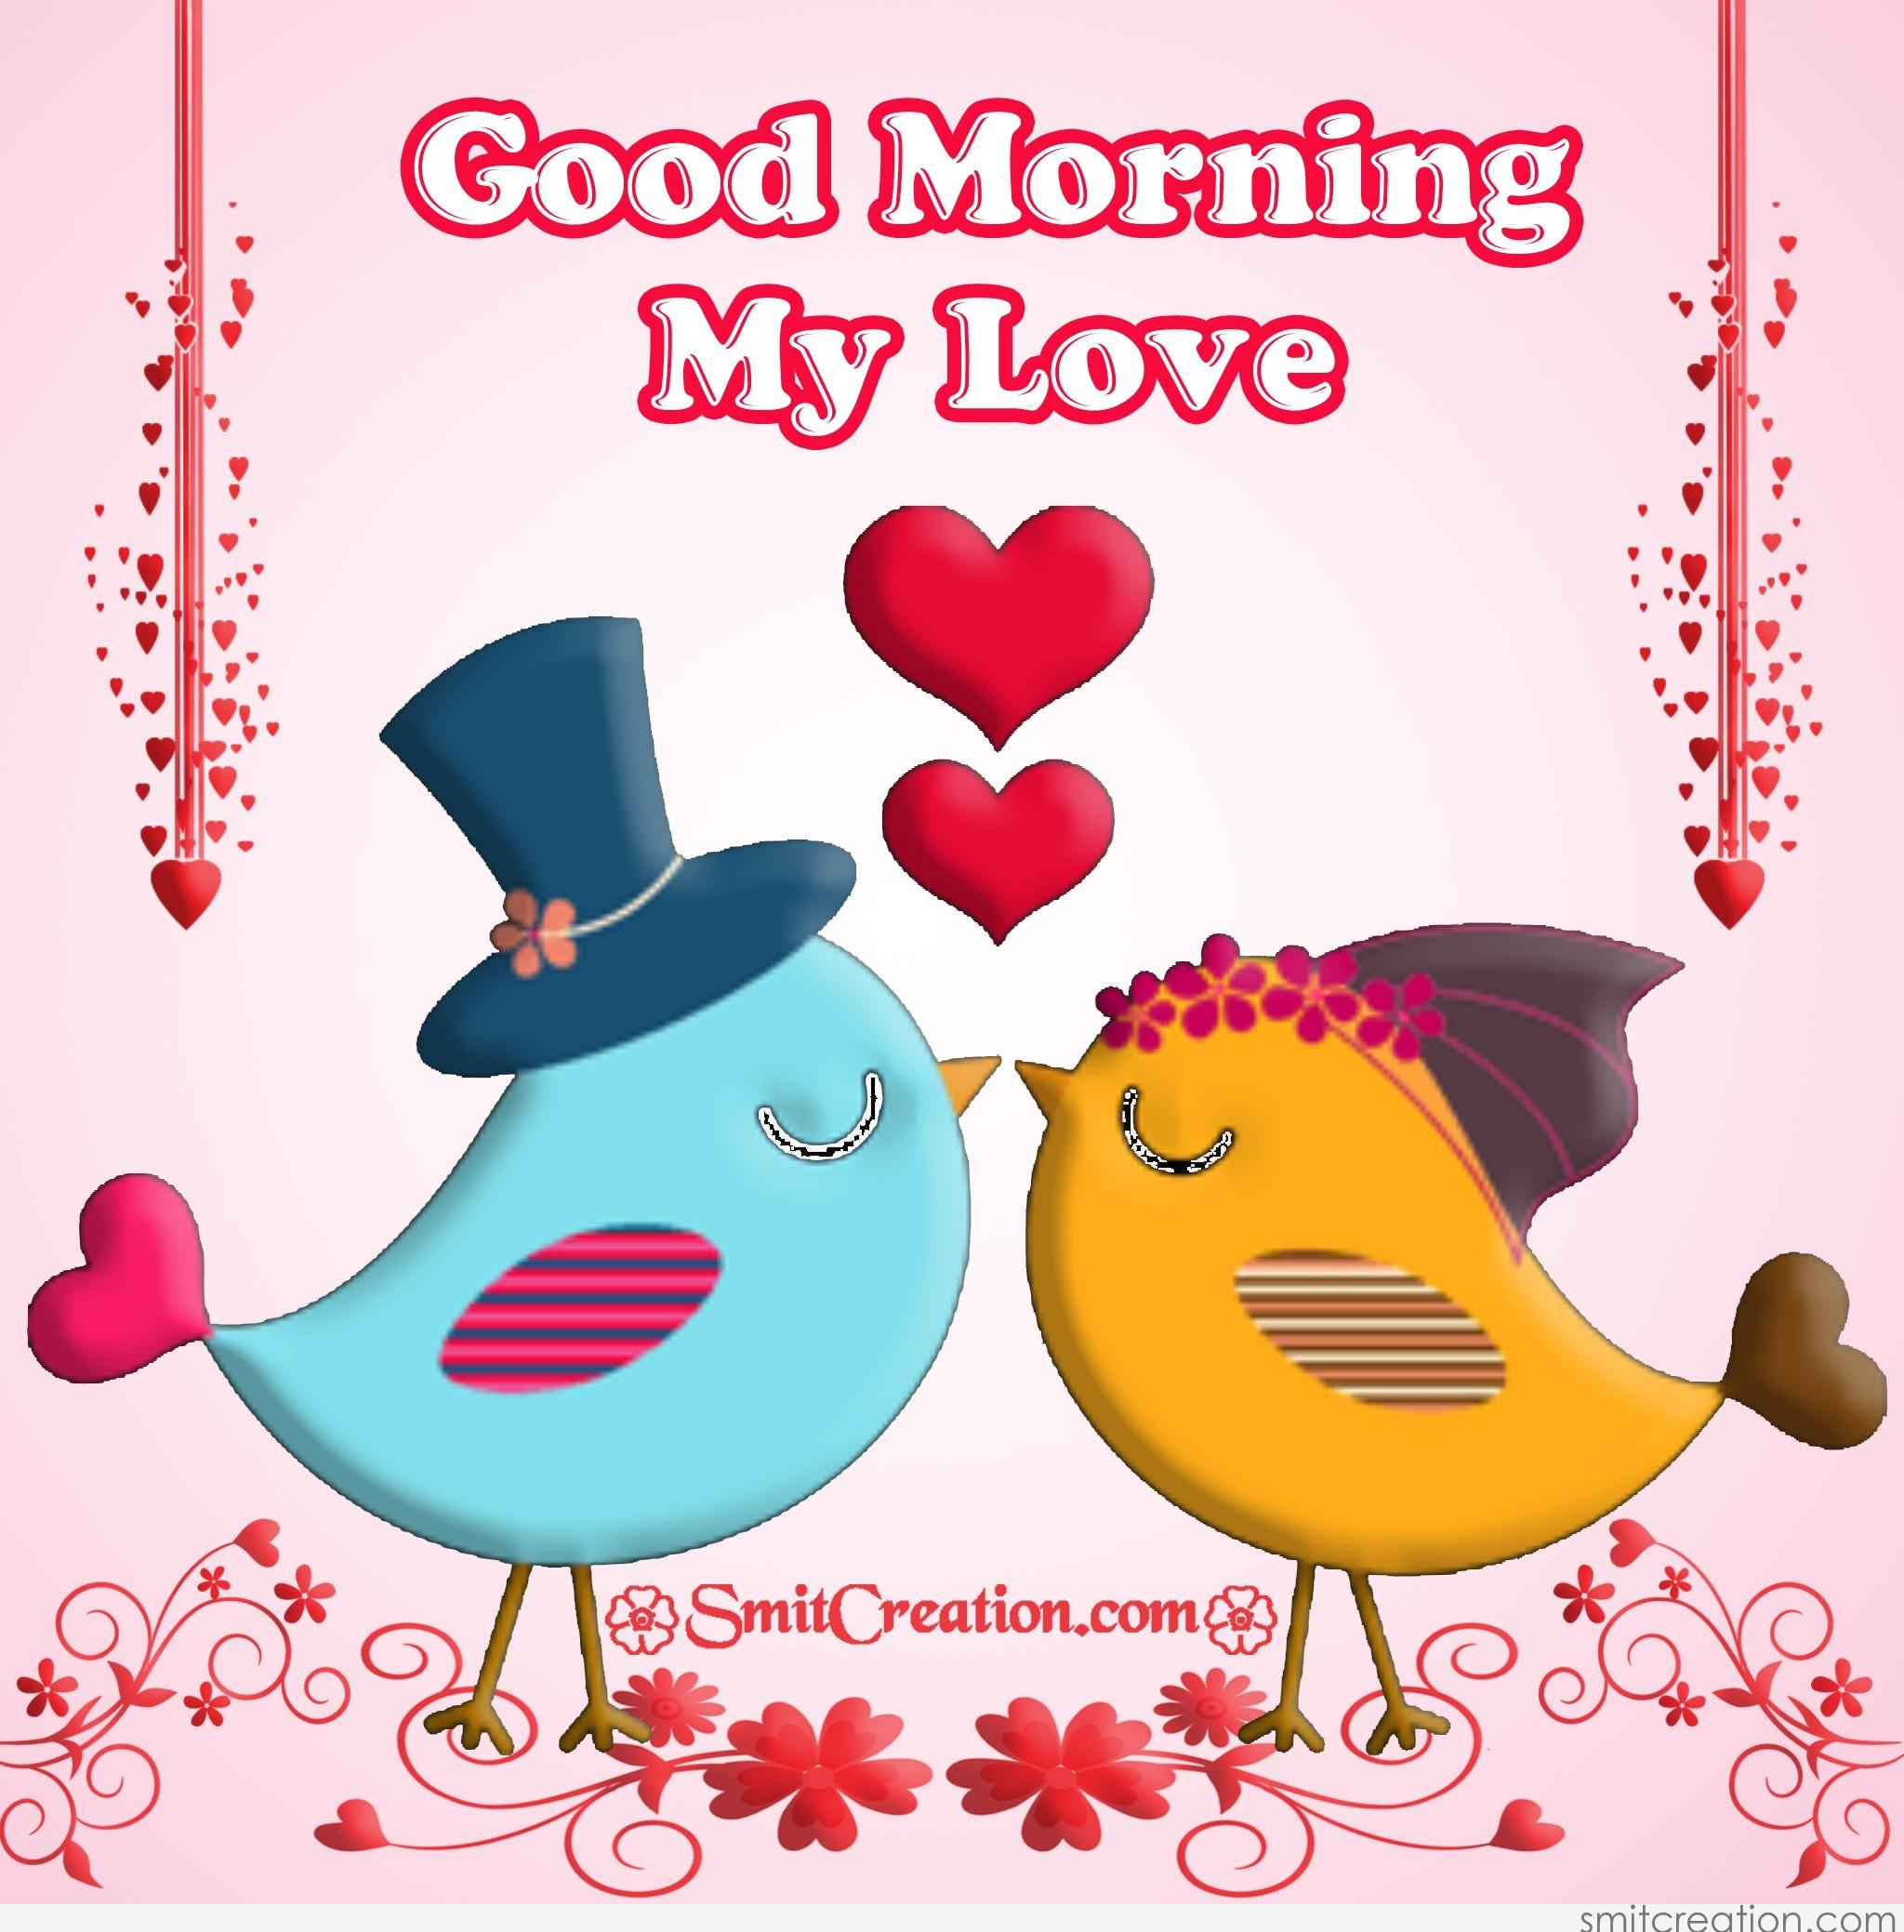 Good Morning My Love Cartoon Images : Good morning my love smitcreation